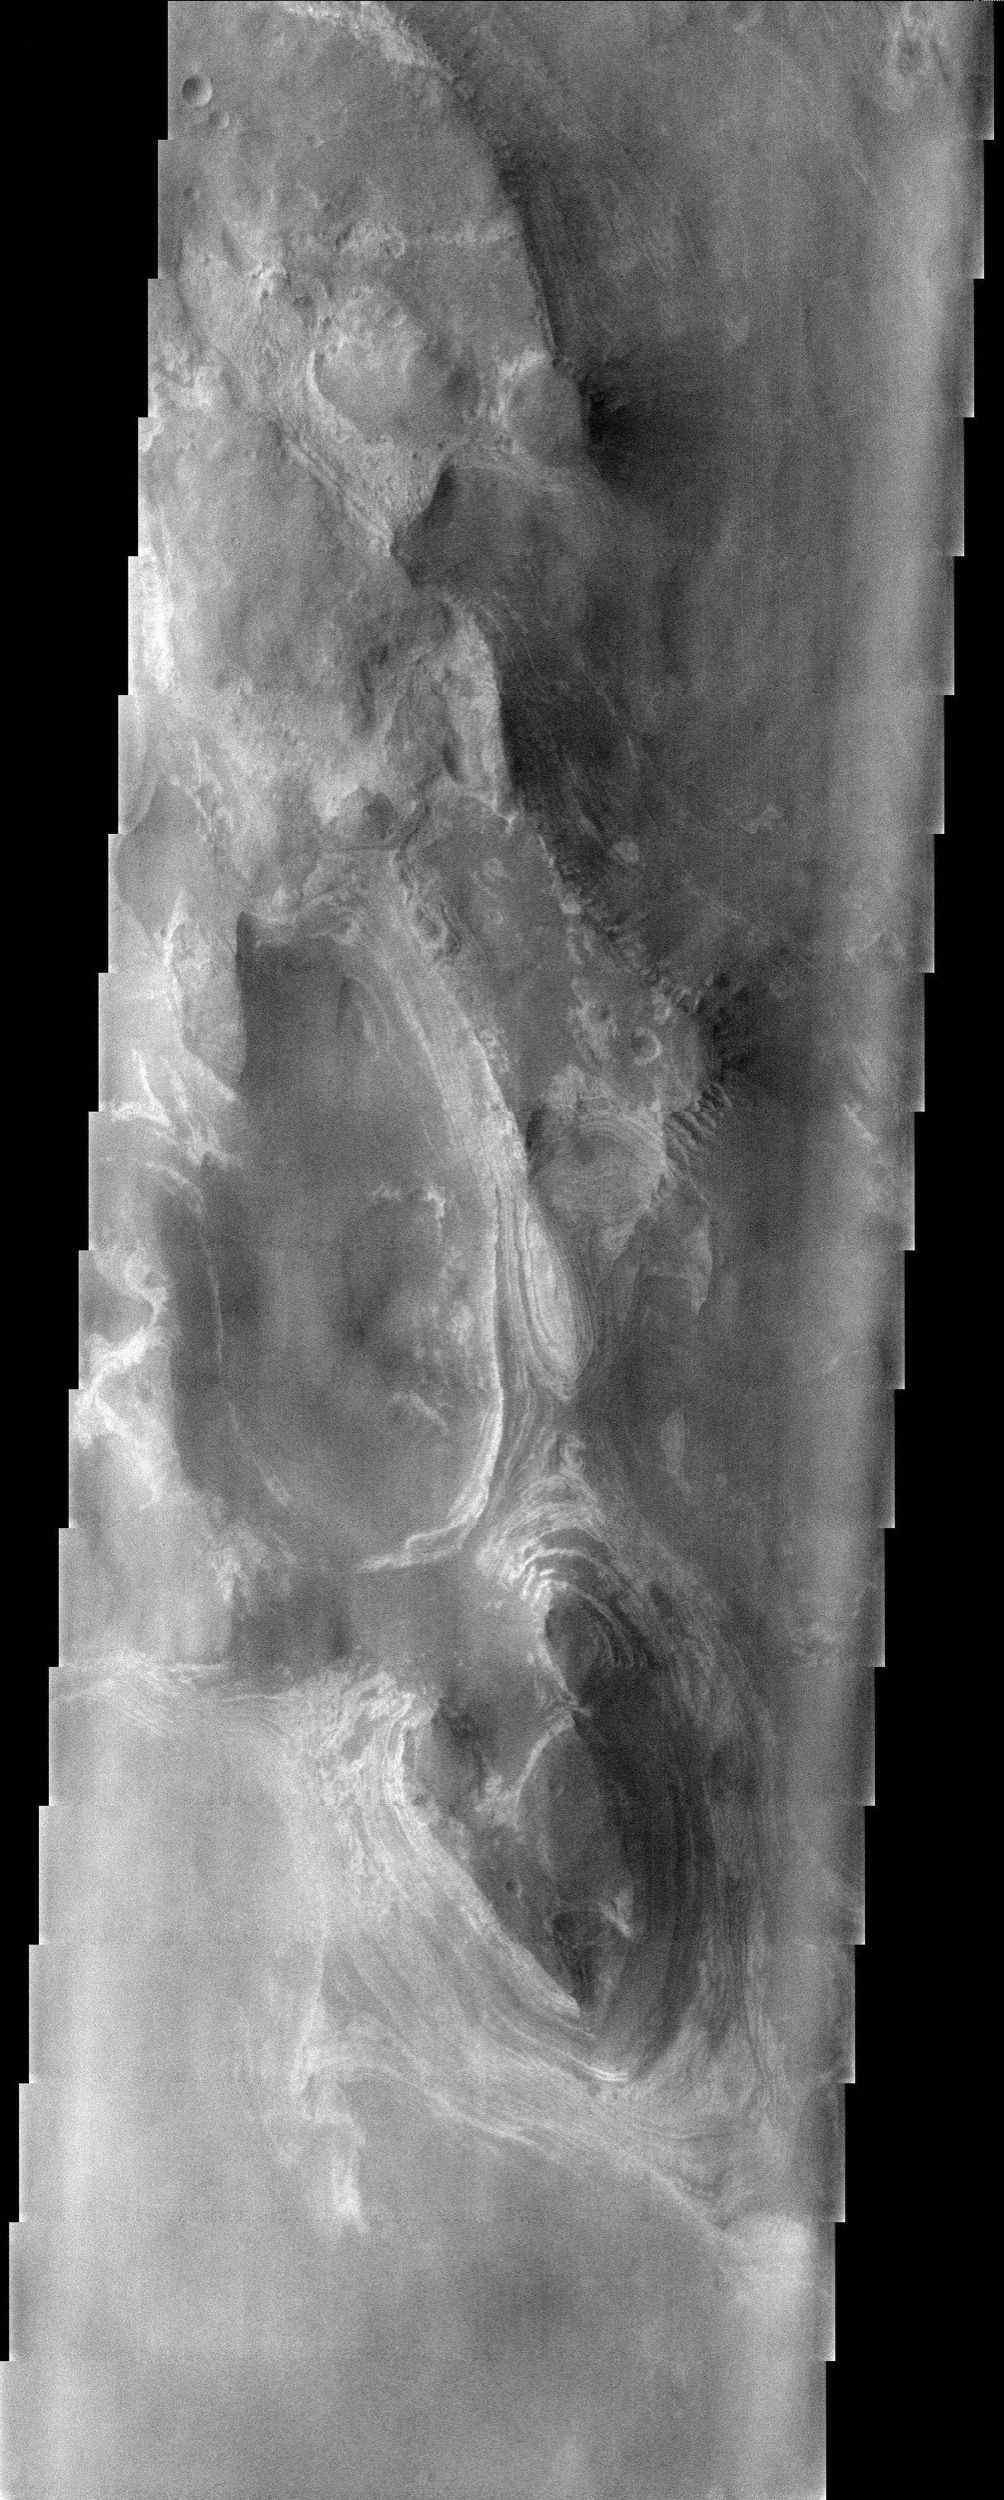 This somewhat cloudy image from NASA's Mars Odyssey spacecraft shows a stunning example of layered deposits in Terby crater, just north of the Hellas impact basin.